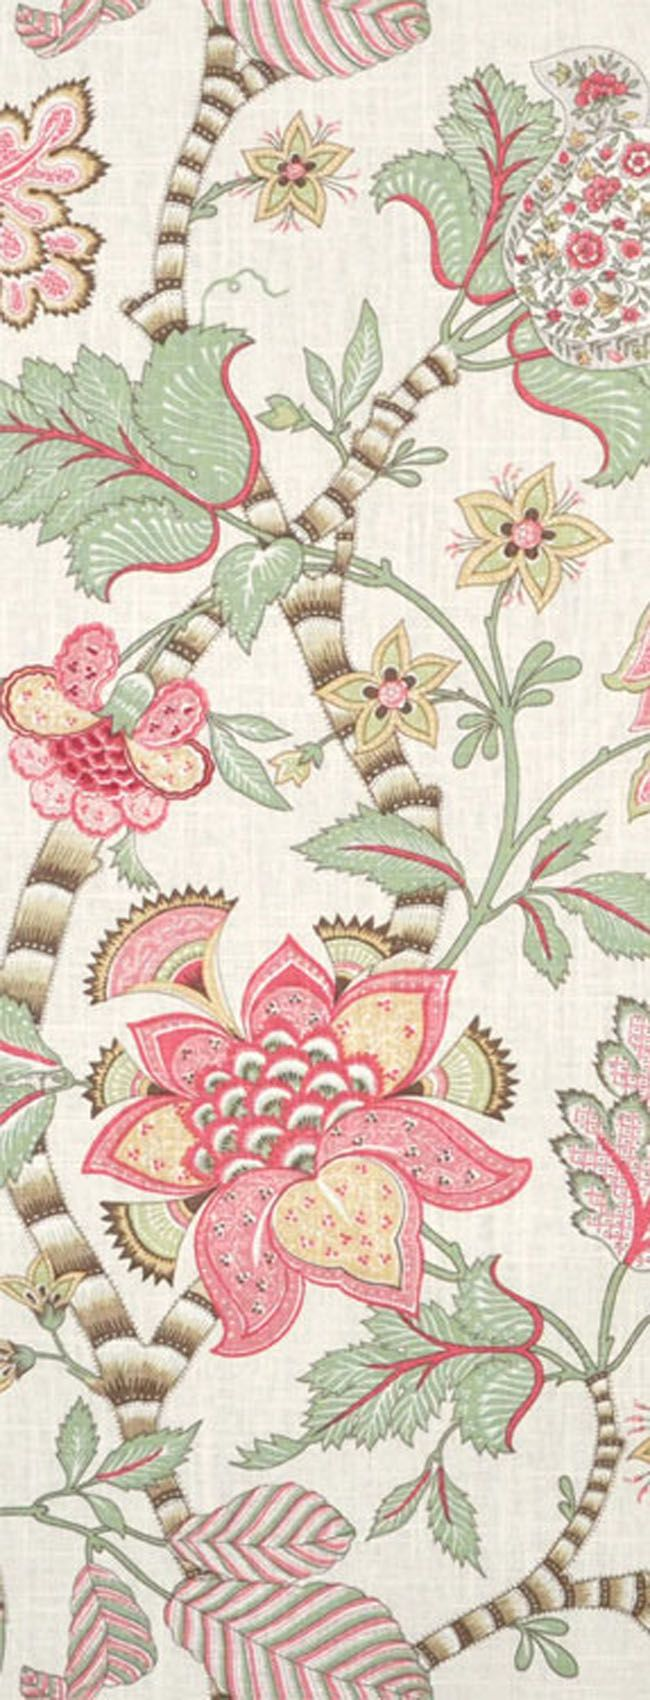 P. Kaufmann Clarice/Cir English Cream Fabric  $21.75  per yard